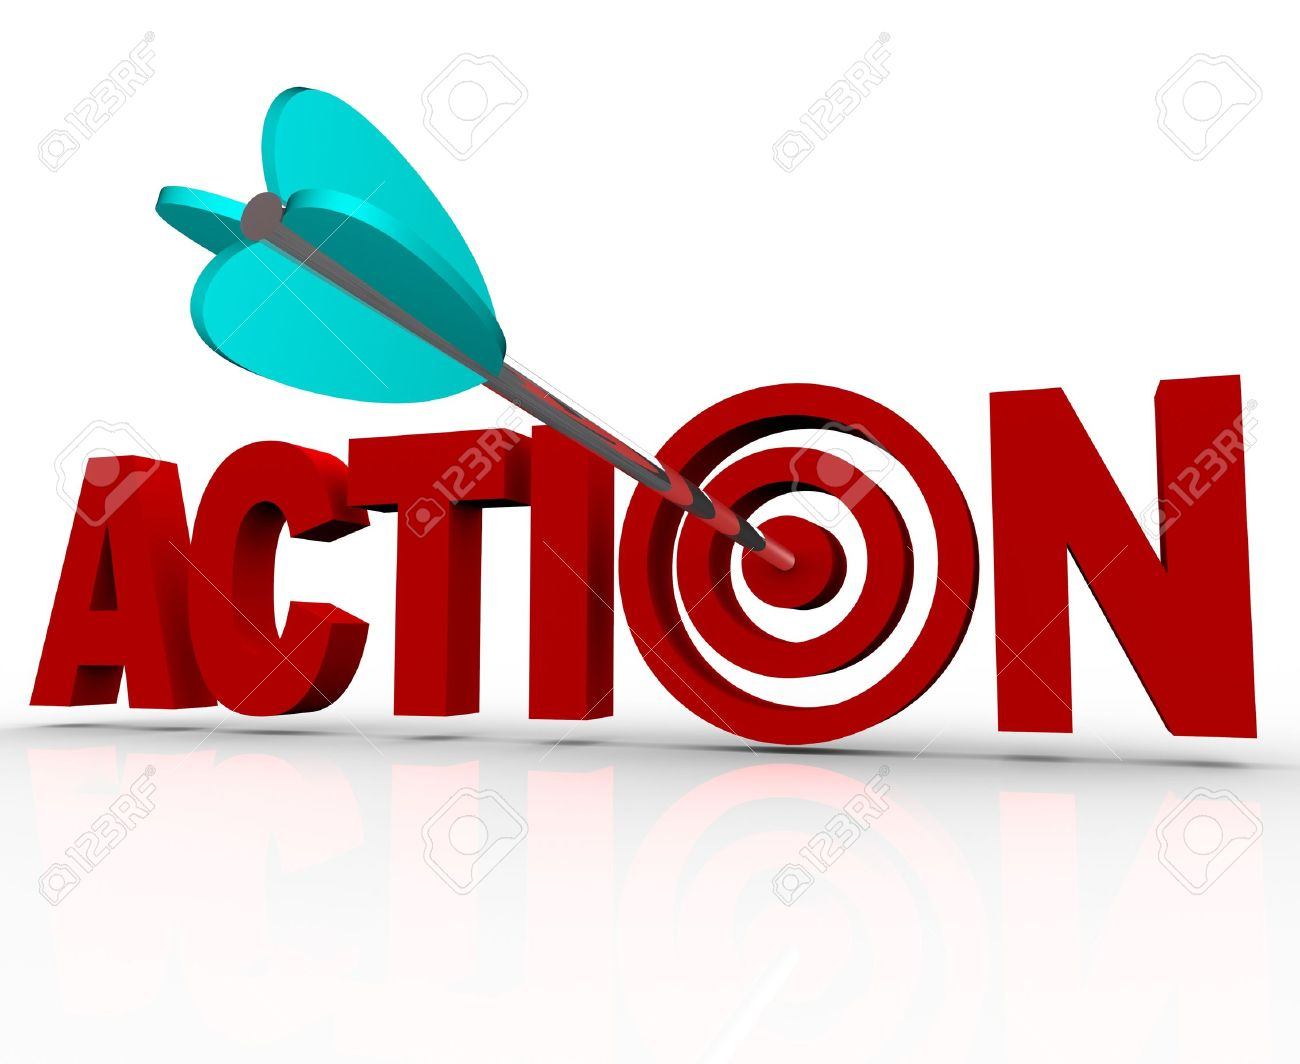 The word Action as a 3D illustration with an arrow hitting a target bullseye in the letter O, representing urgency or an emergency need to act now to solve a problem or complete a goal Stock Photo - 10465601